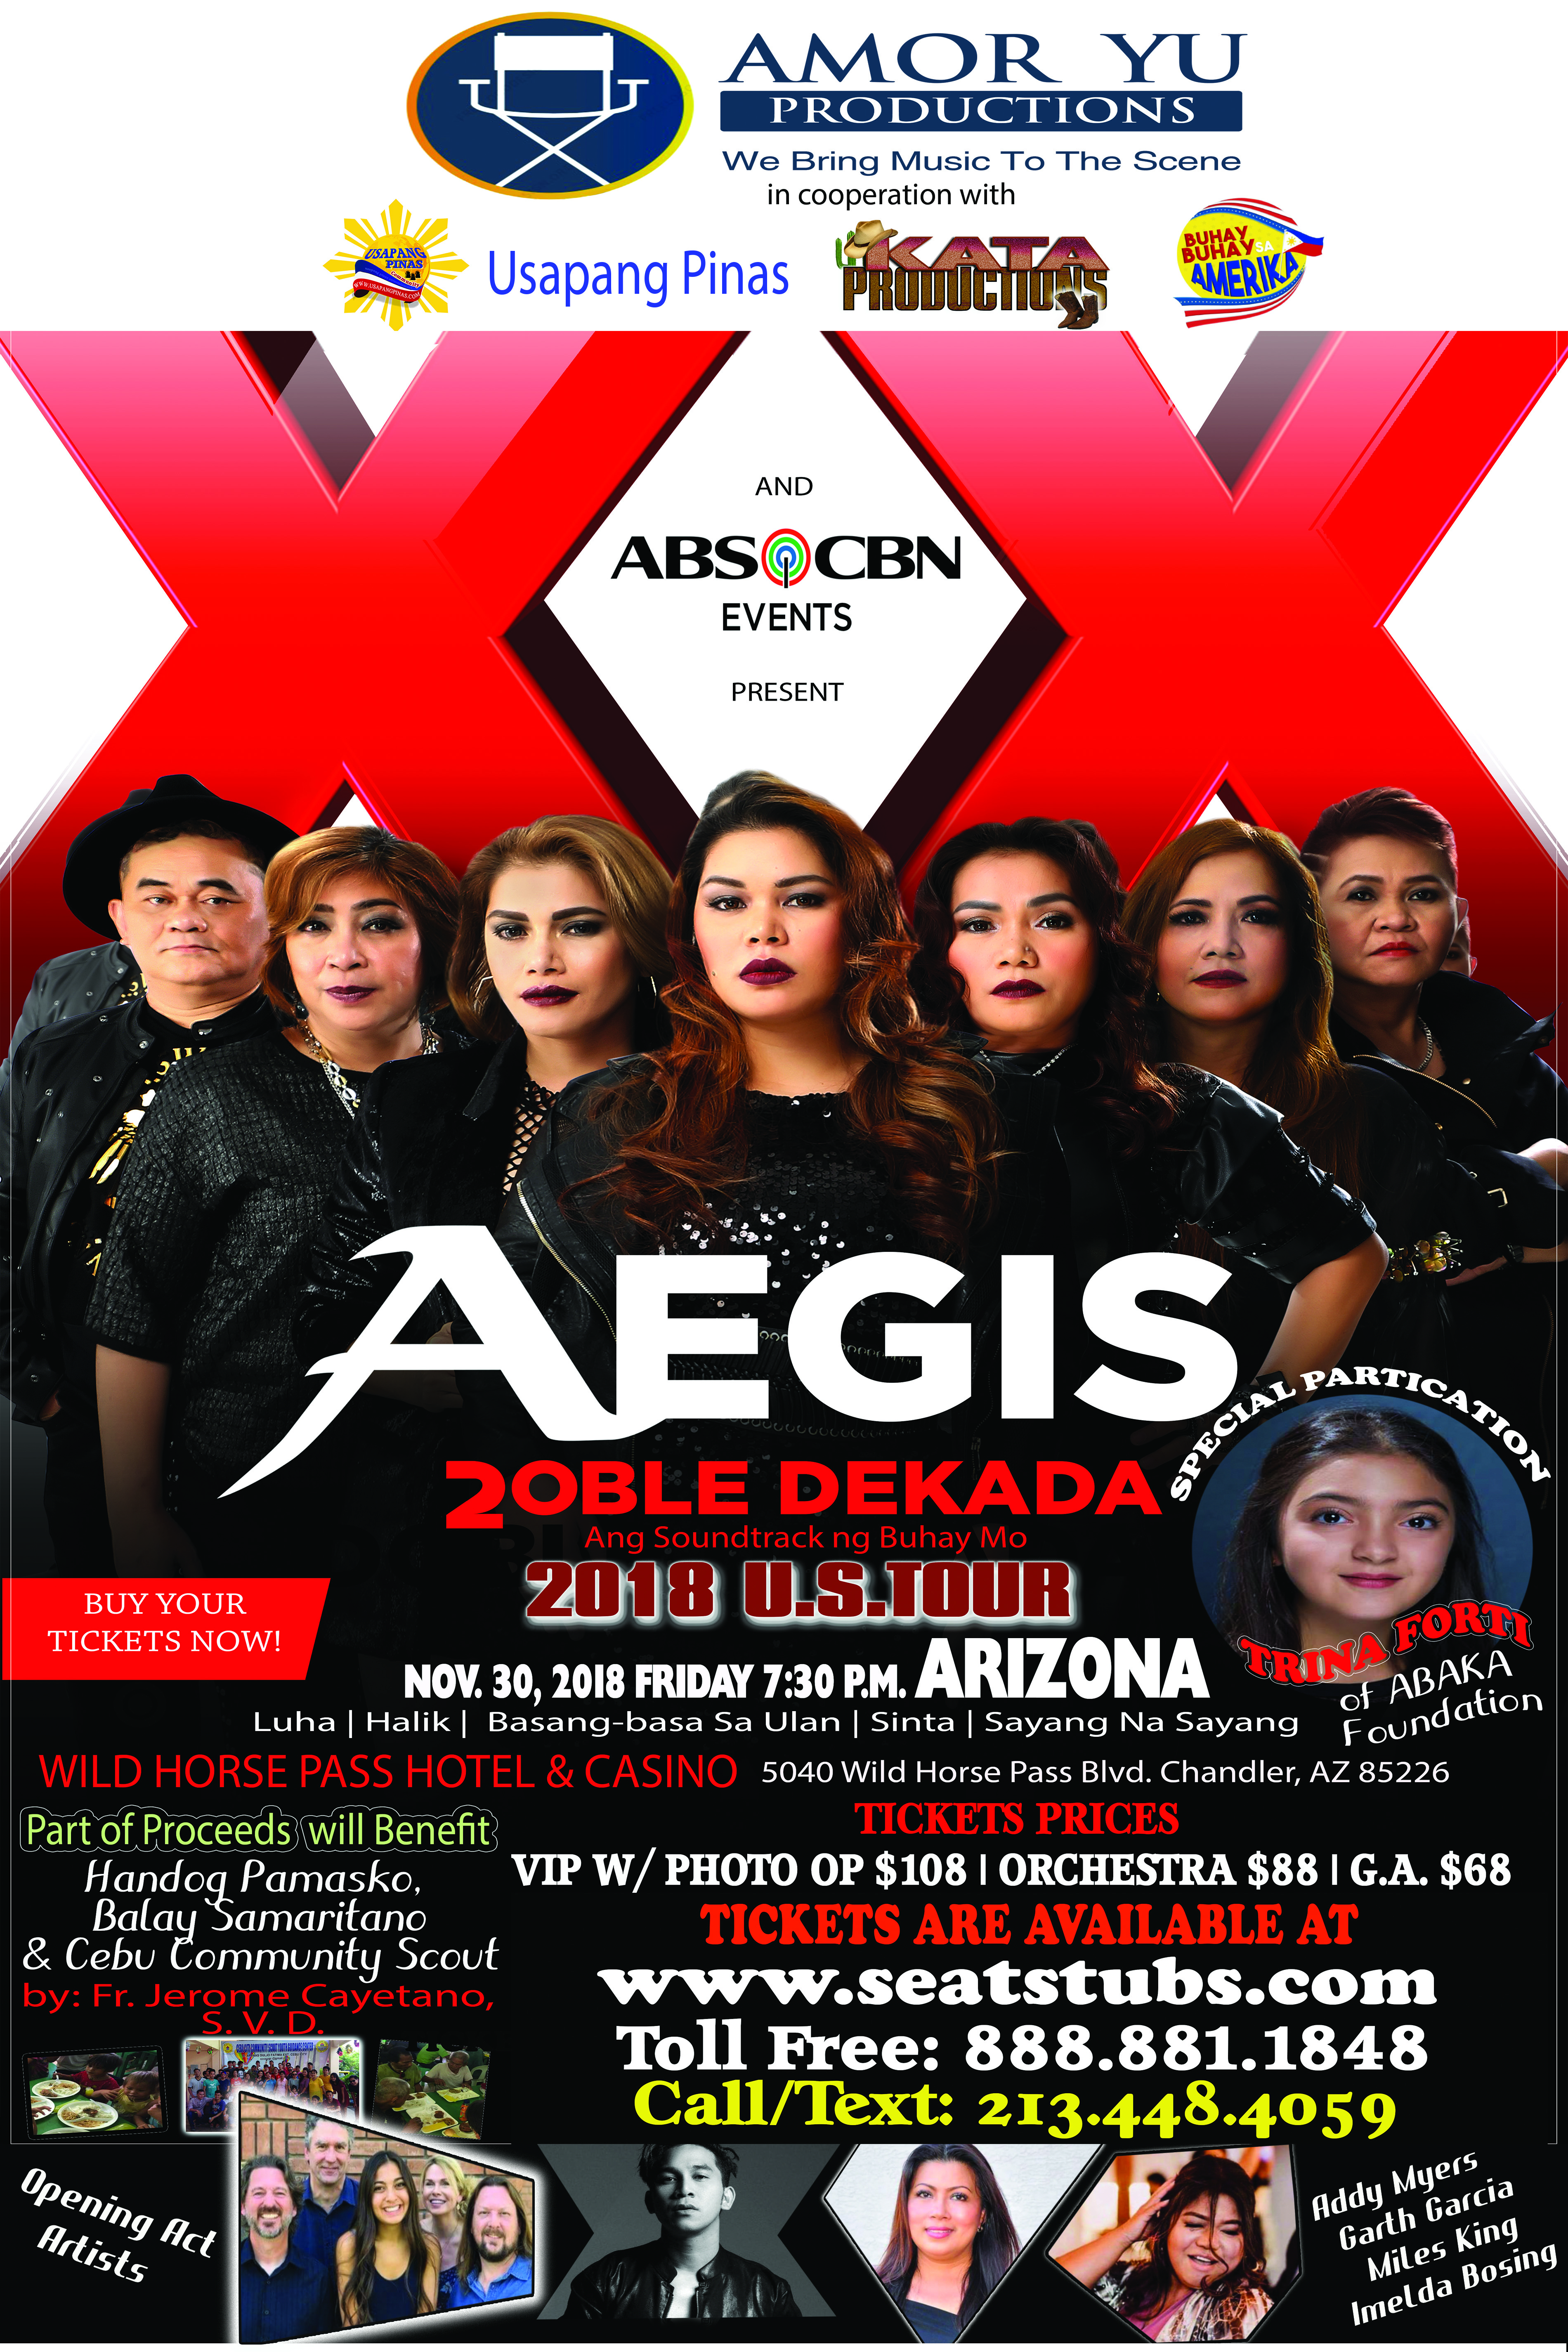 The Aegis Band Live In Chandler Arizon Nov. 30, 2018